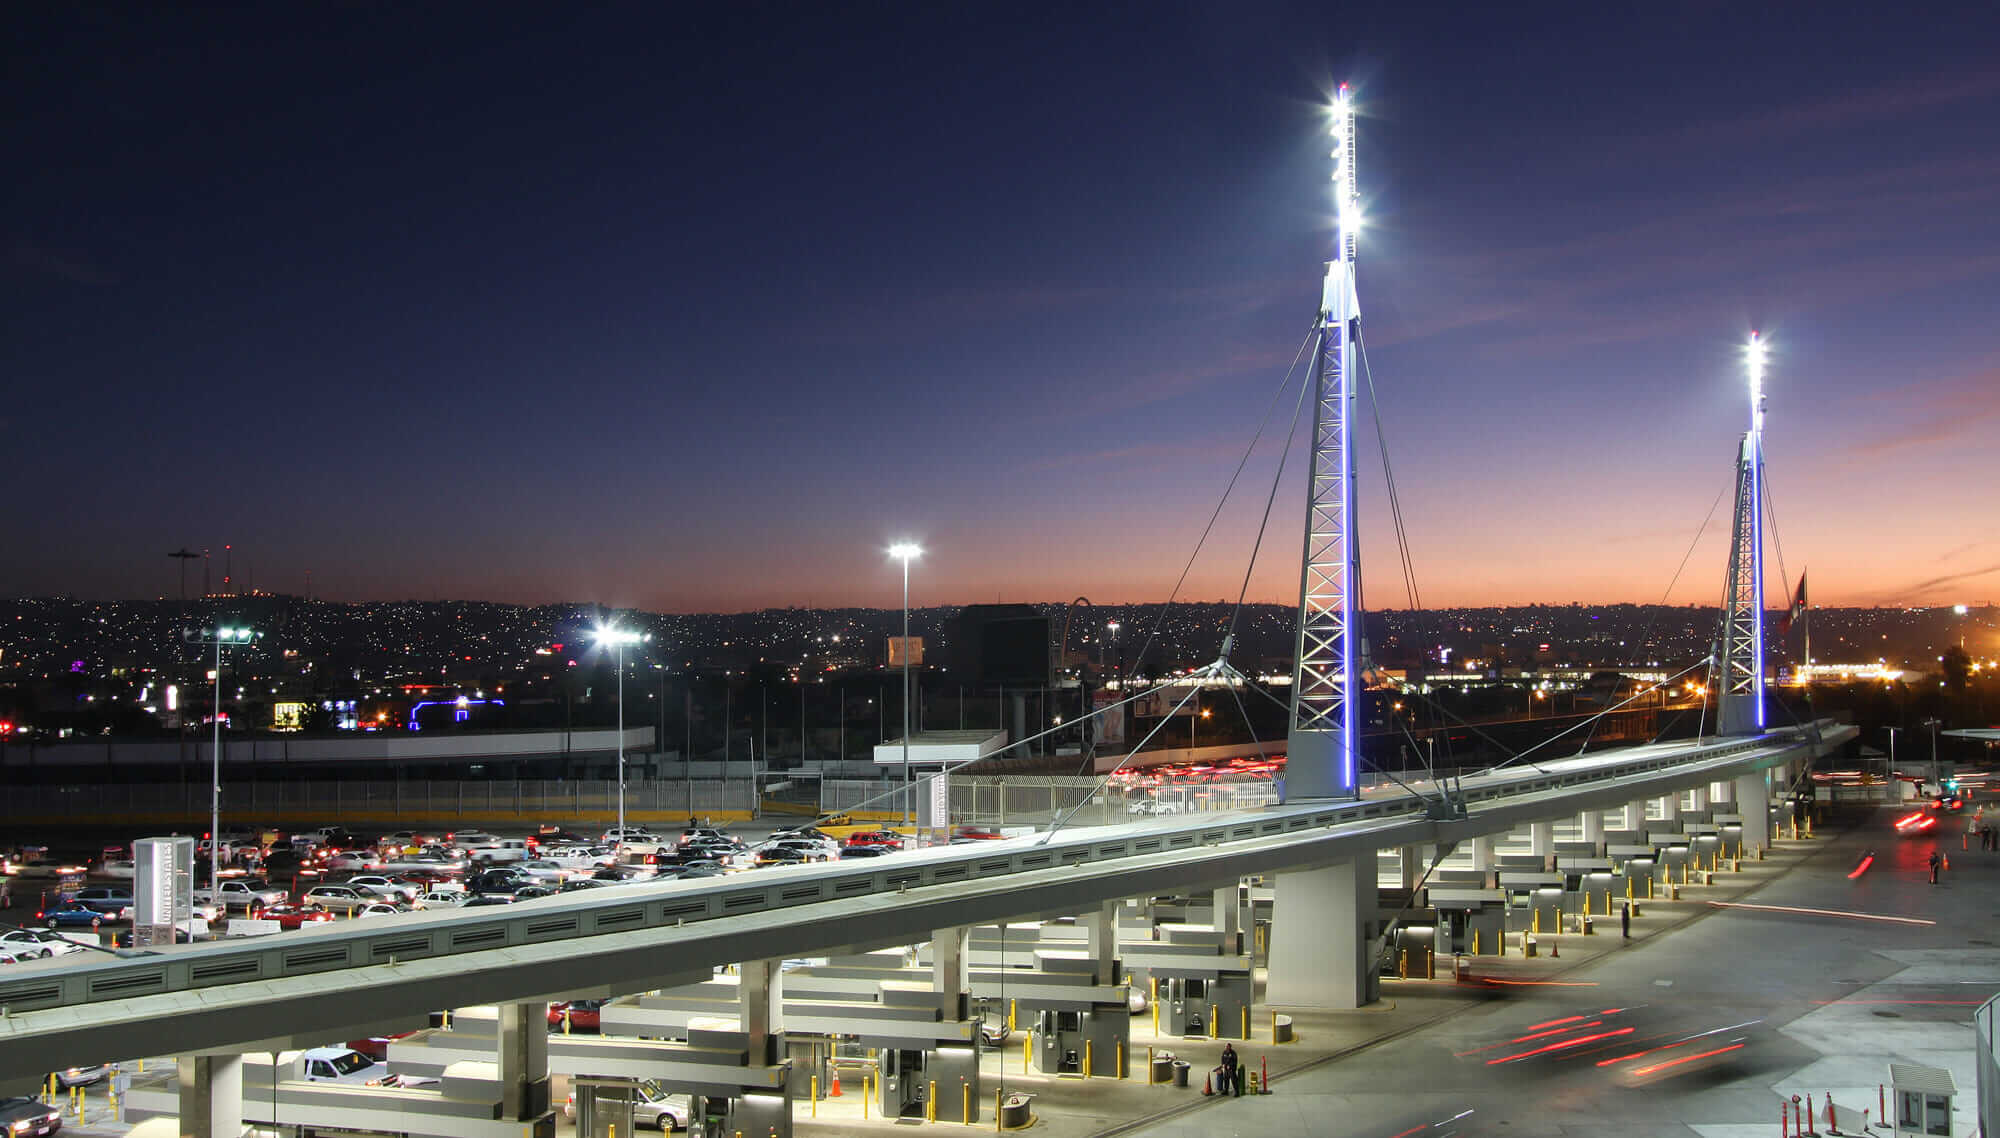 An evening view of the San Ysidro border crossing from the roof of the main building.